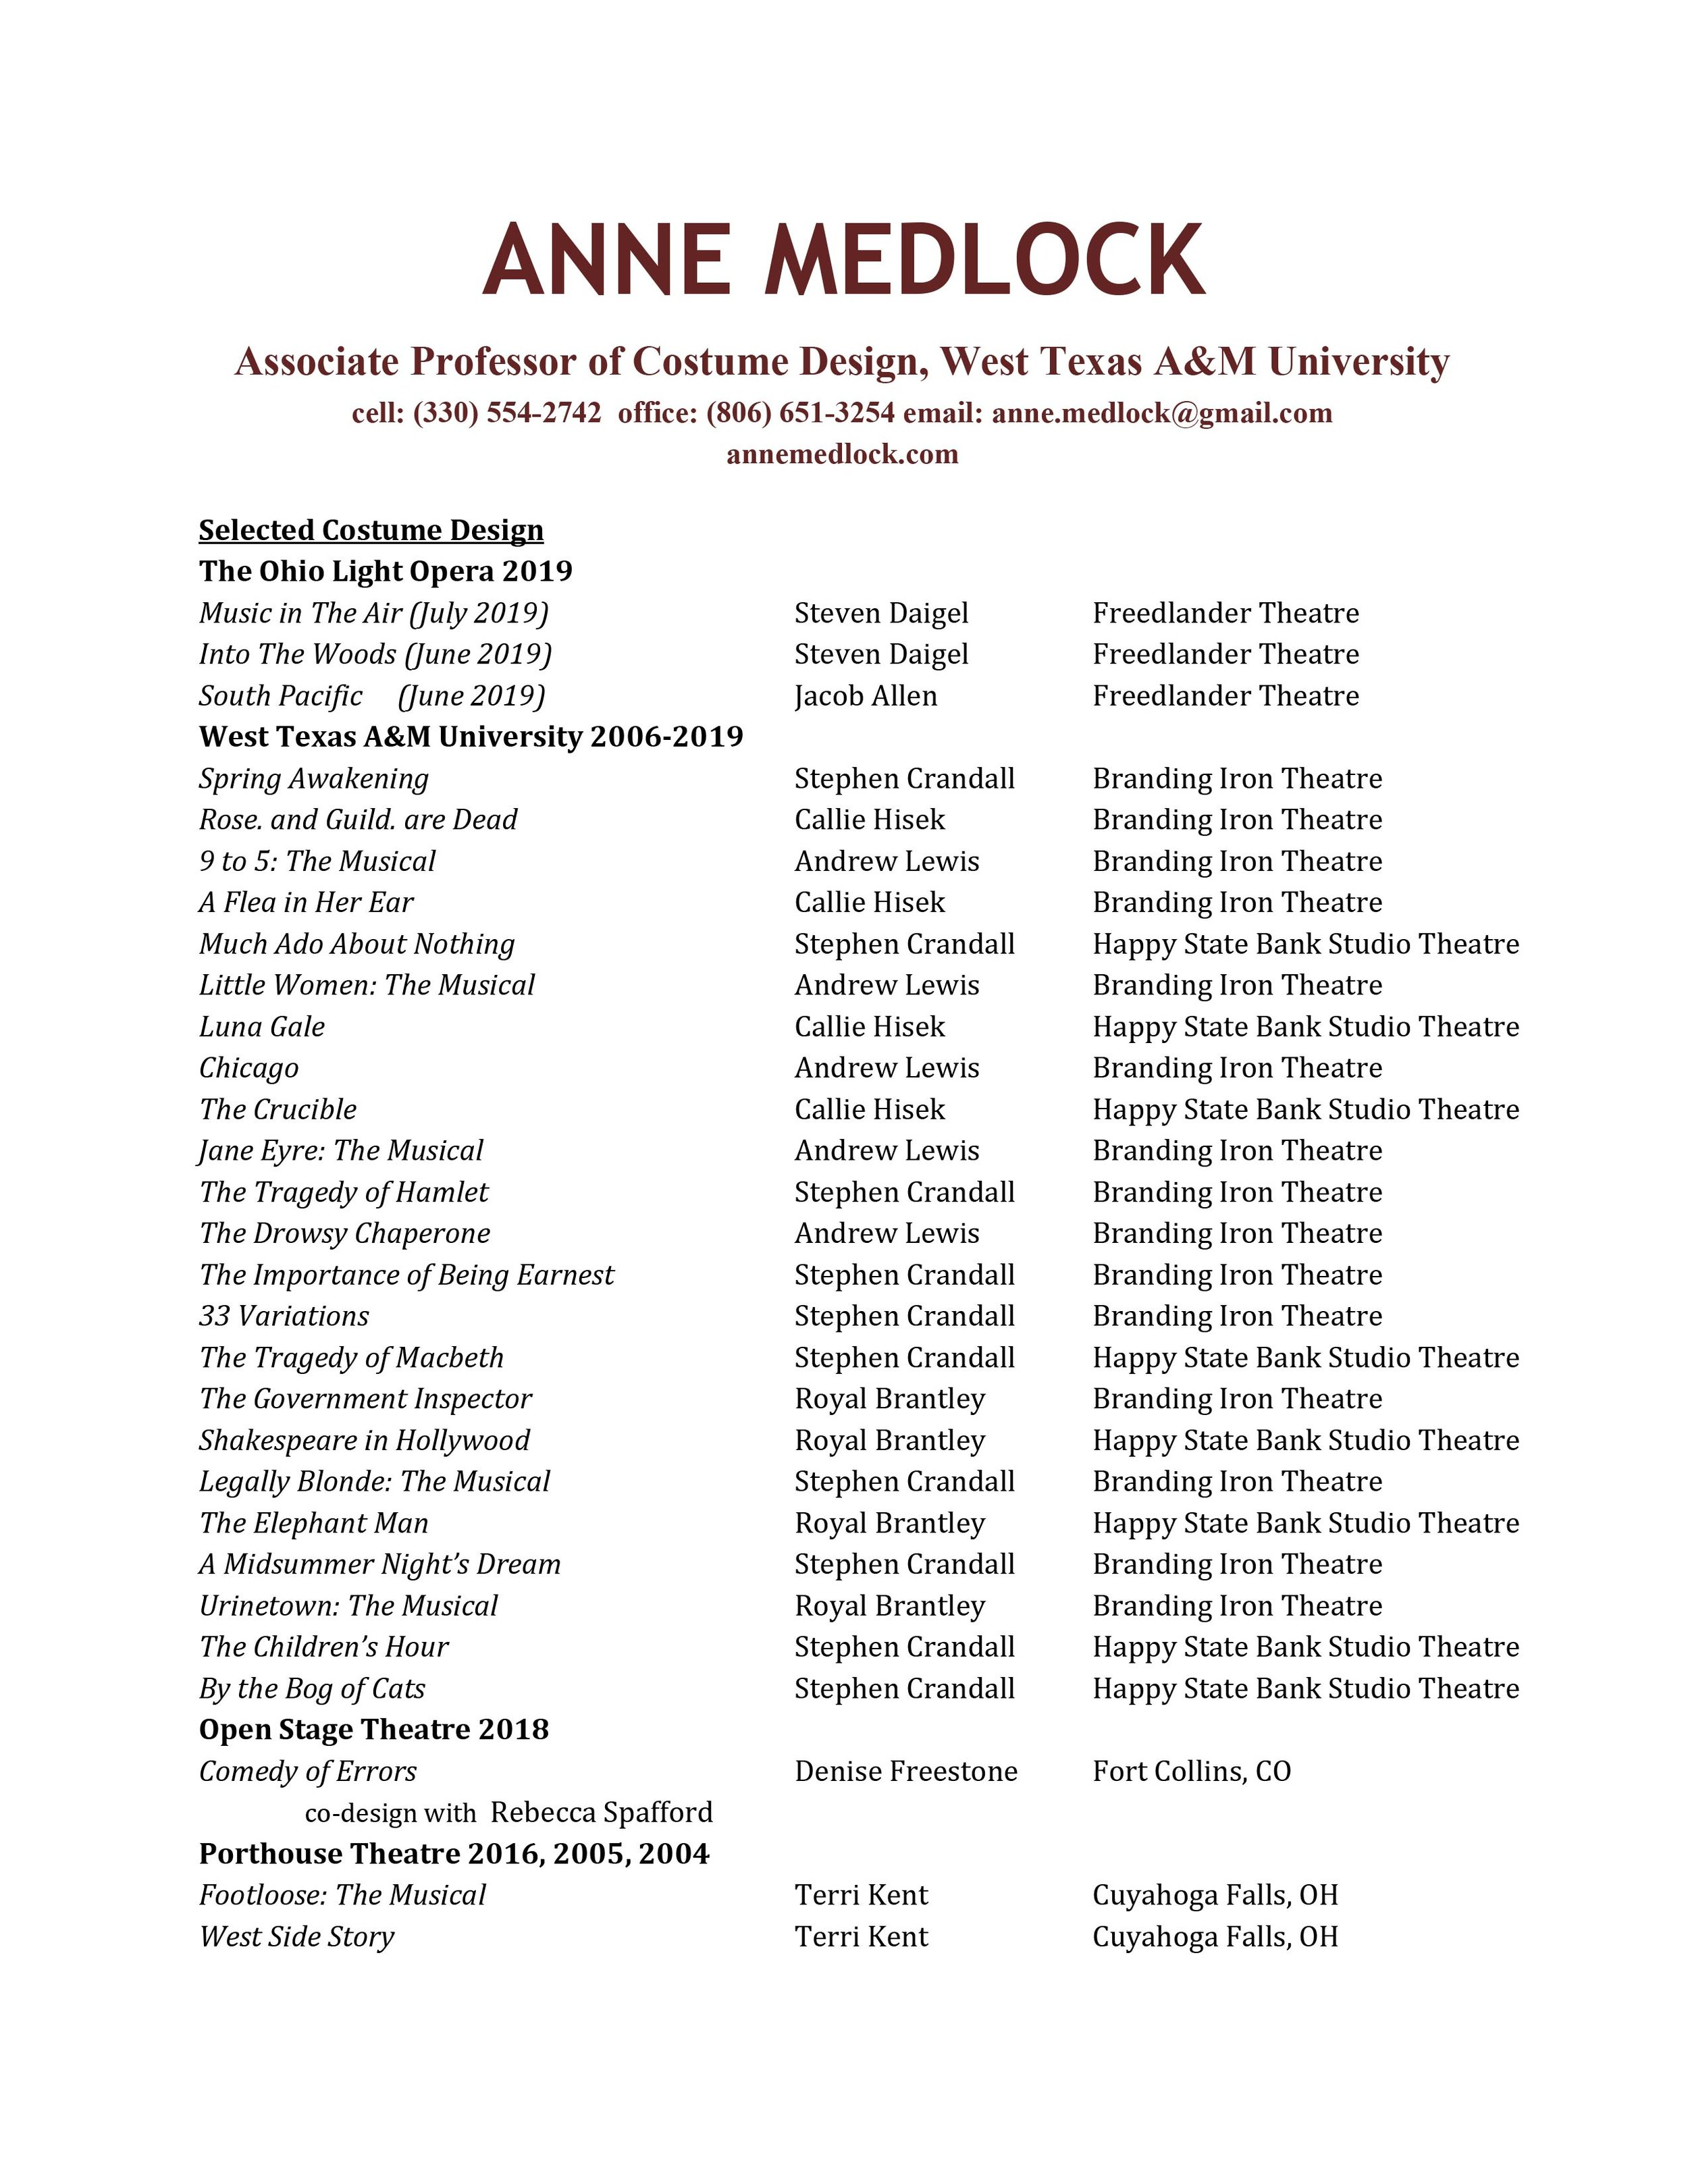 Anne Medlock design resume-1.jpg